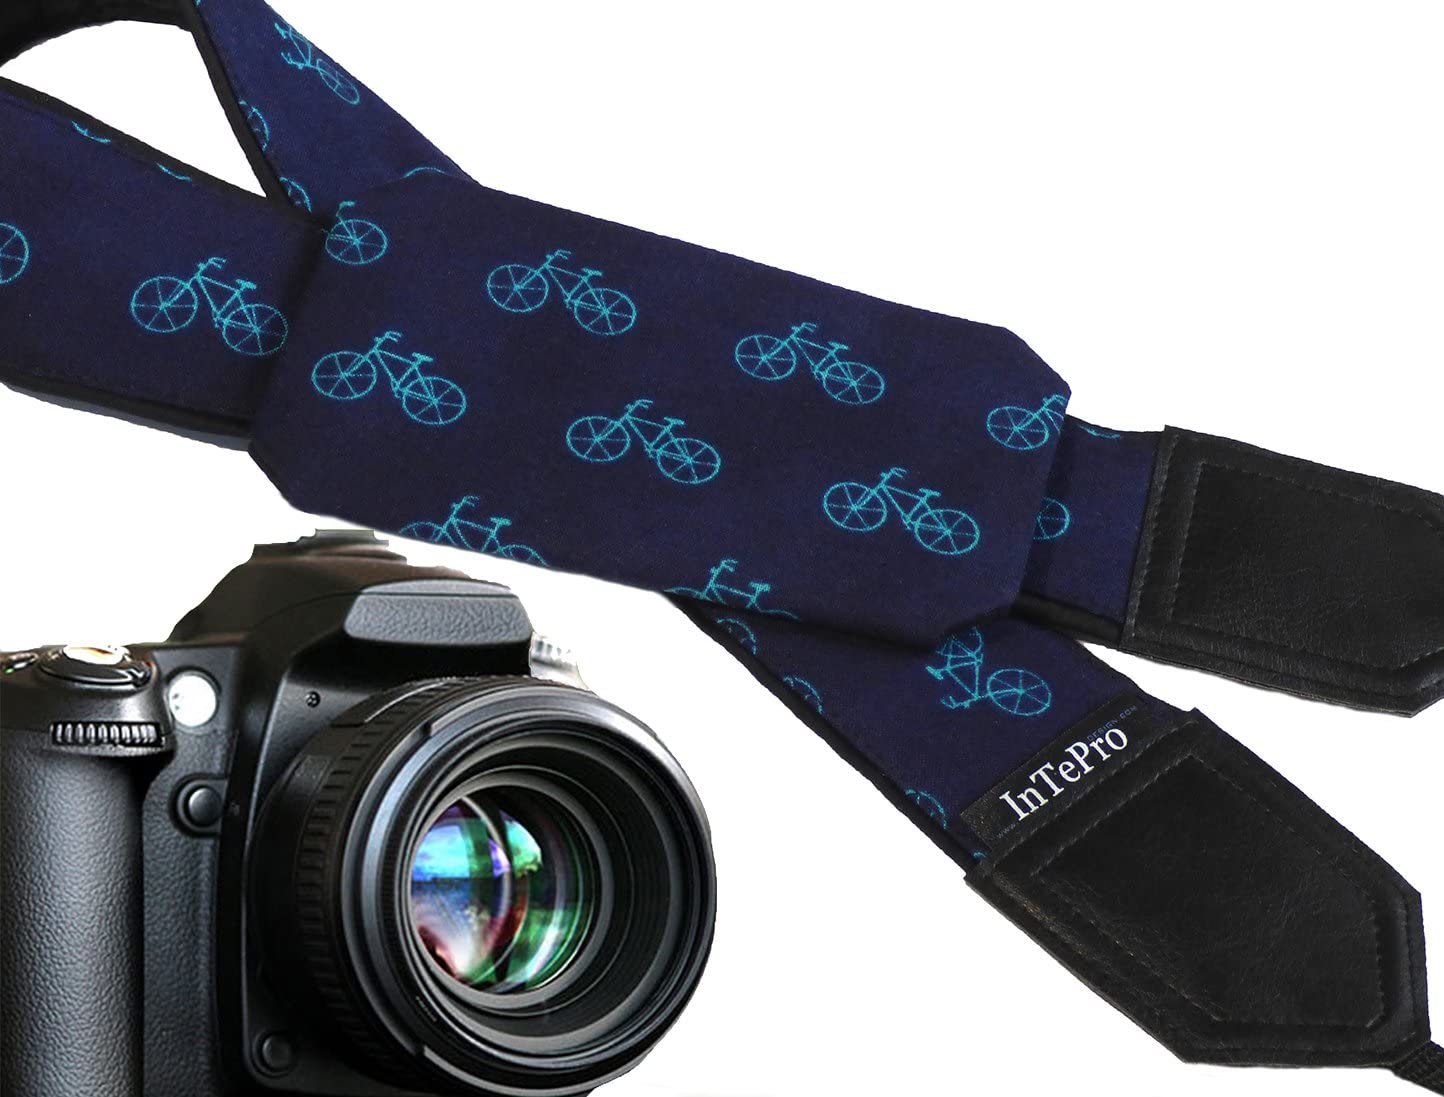 Dark Blue Camera Accessory with Pocket Teal Bicycles Pocket Camera Strap with Bikes Code 00340 Gifts for Men Camera Gear for him